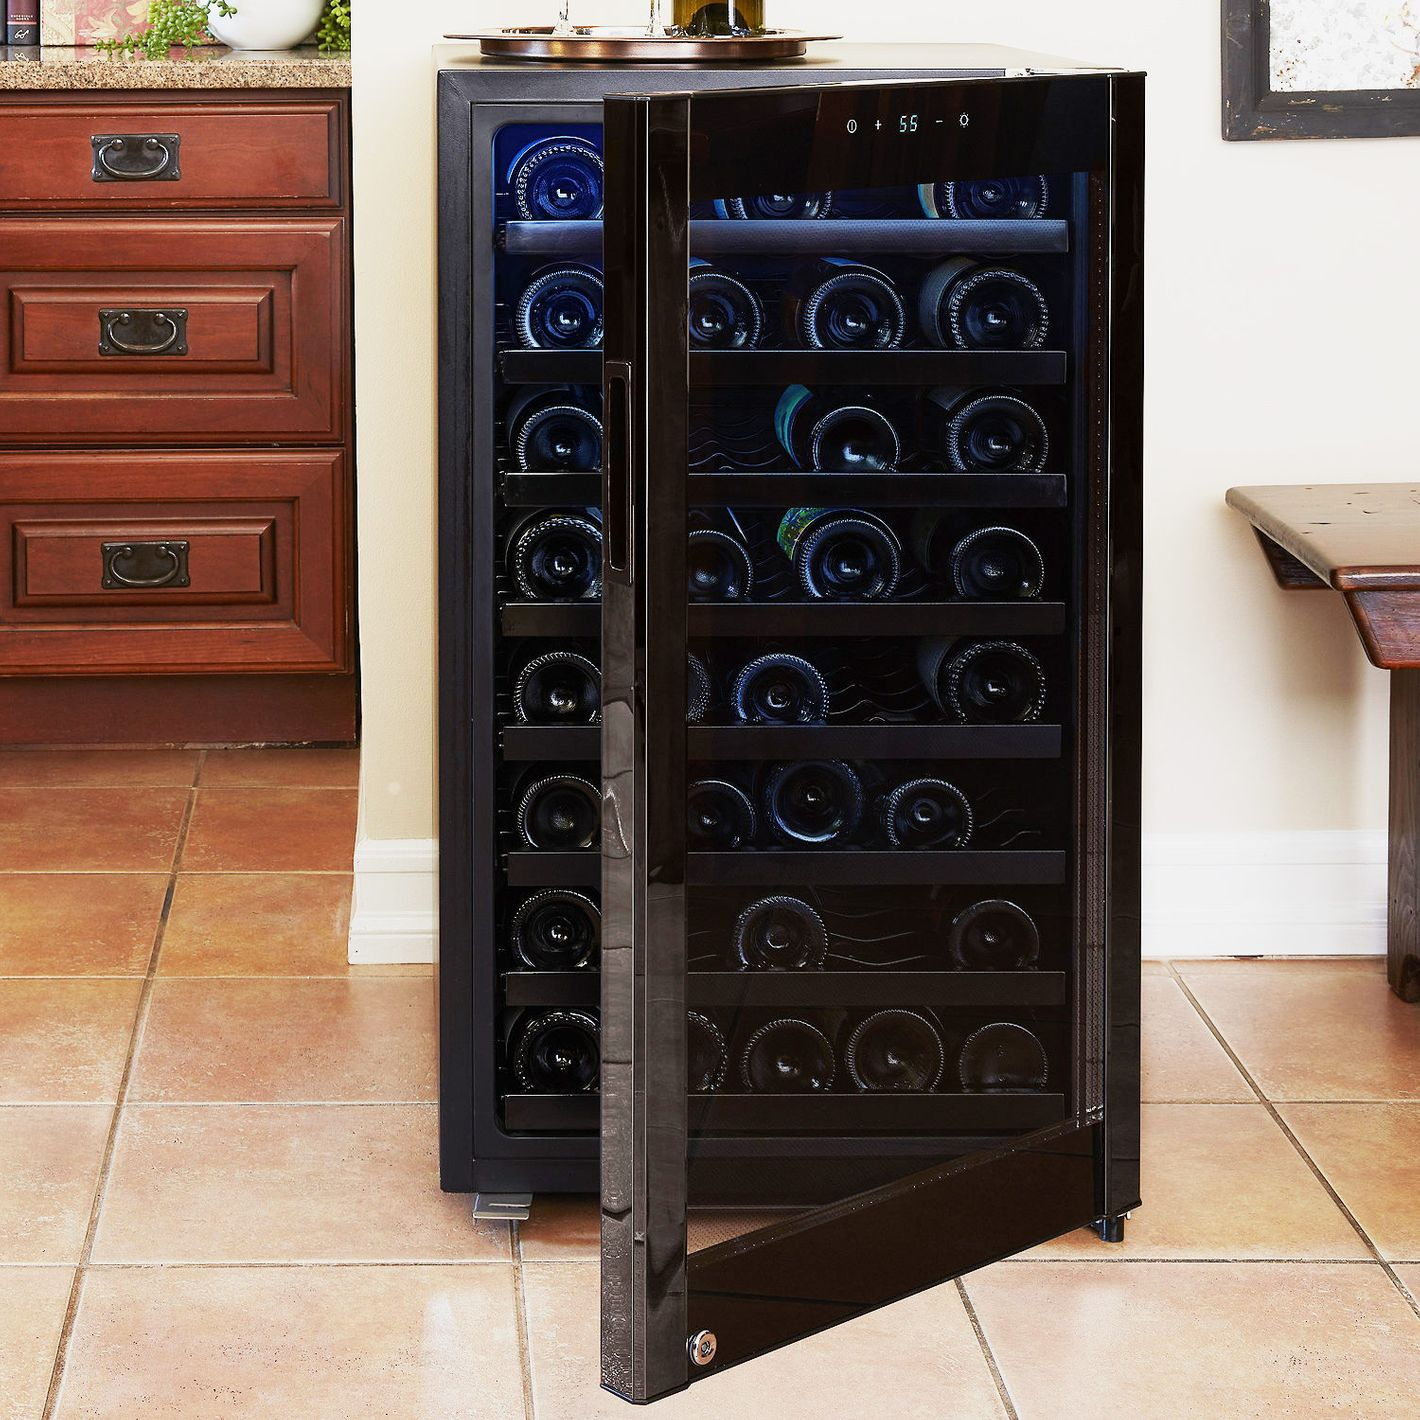 52 Bottle Evolution Series Wine Refrigerator